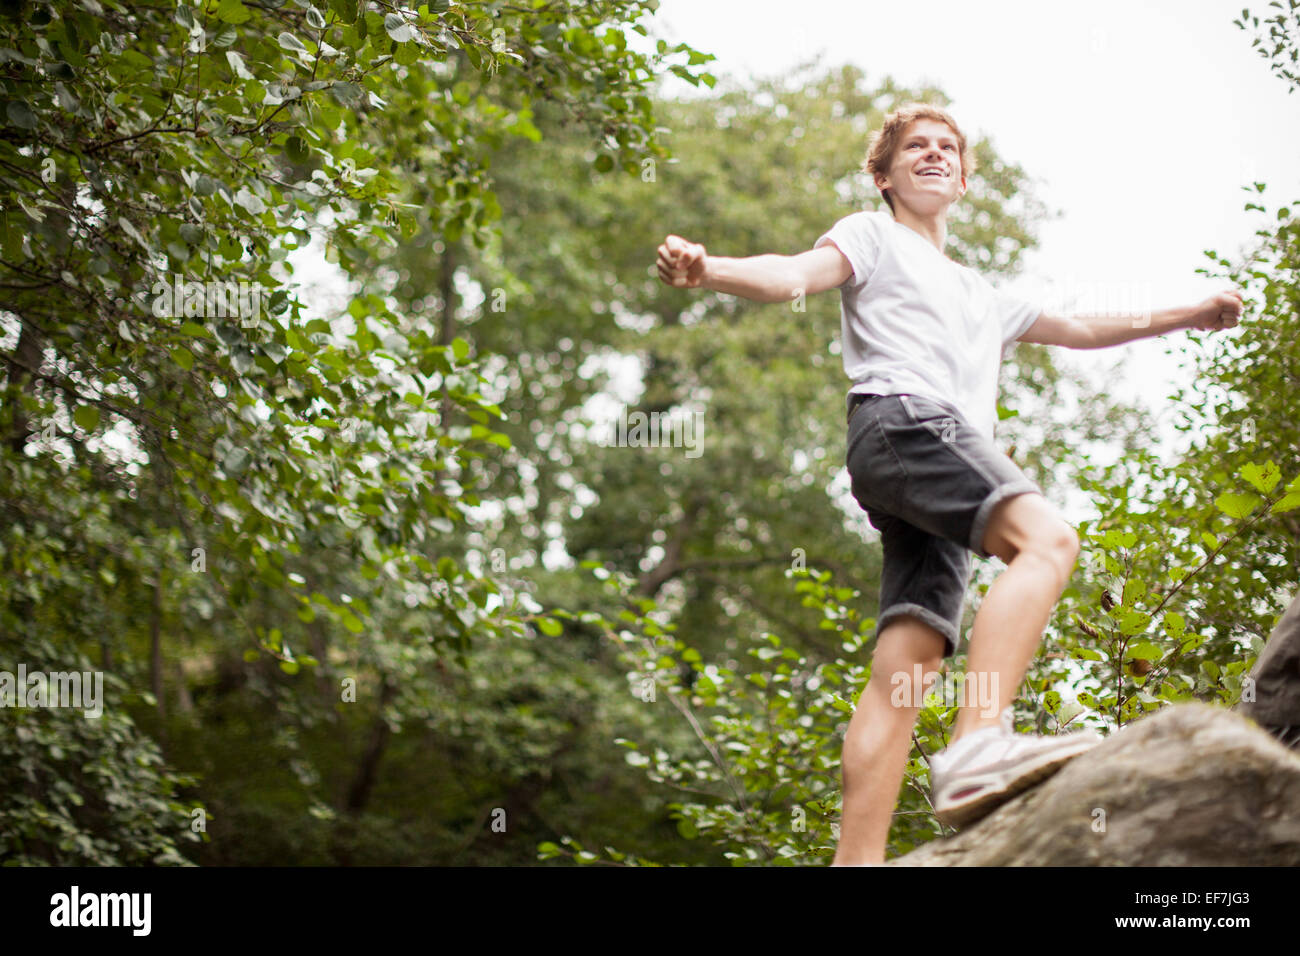 Teenage boy playing in a park Photo Stock